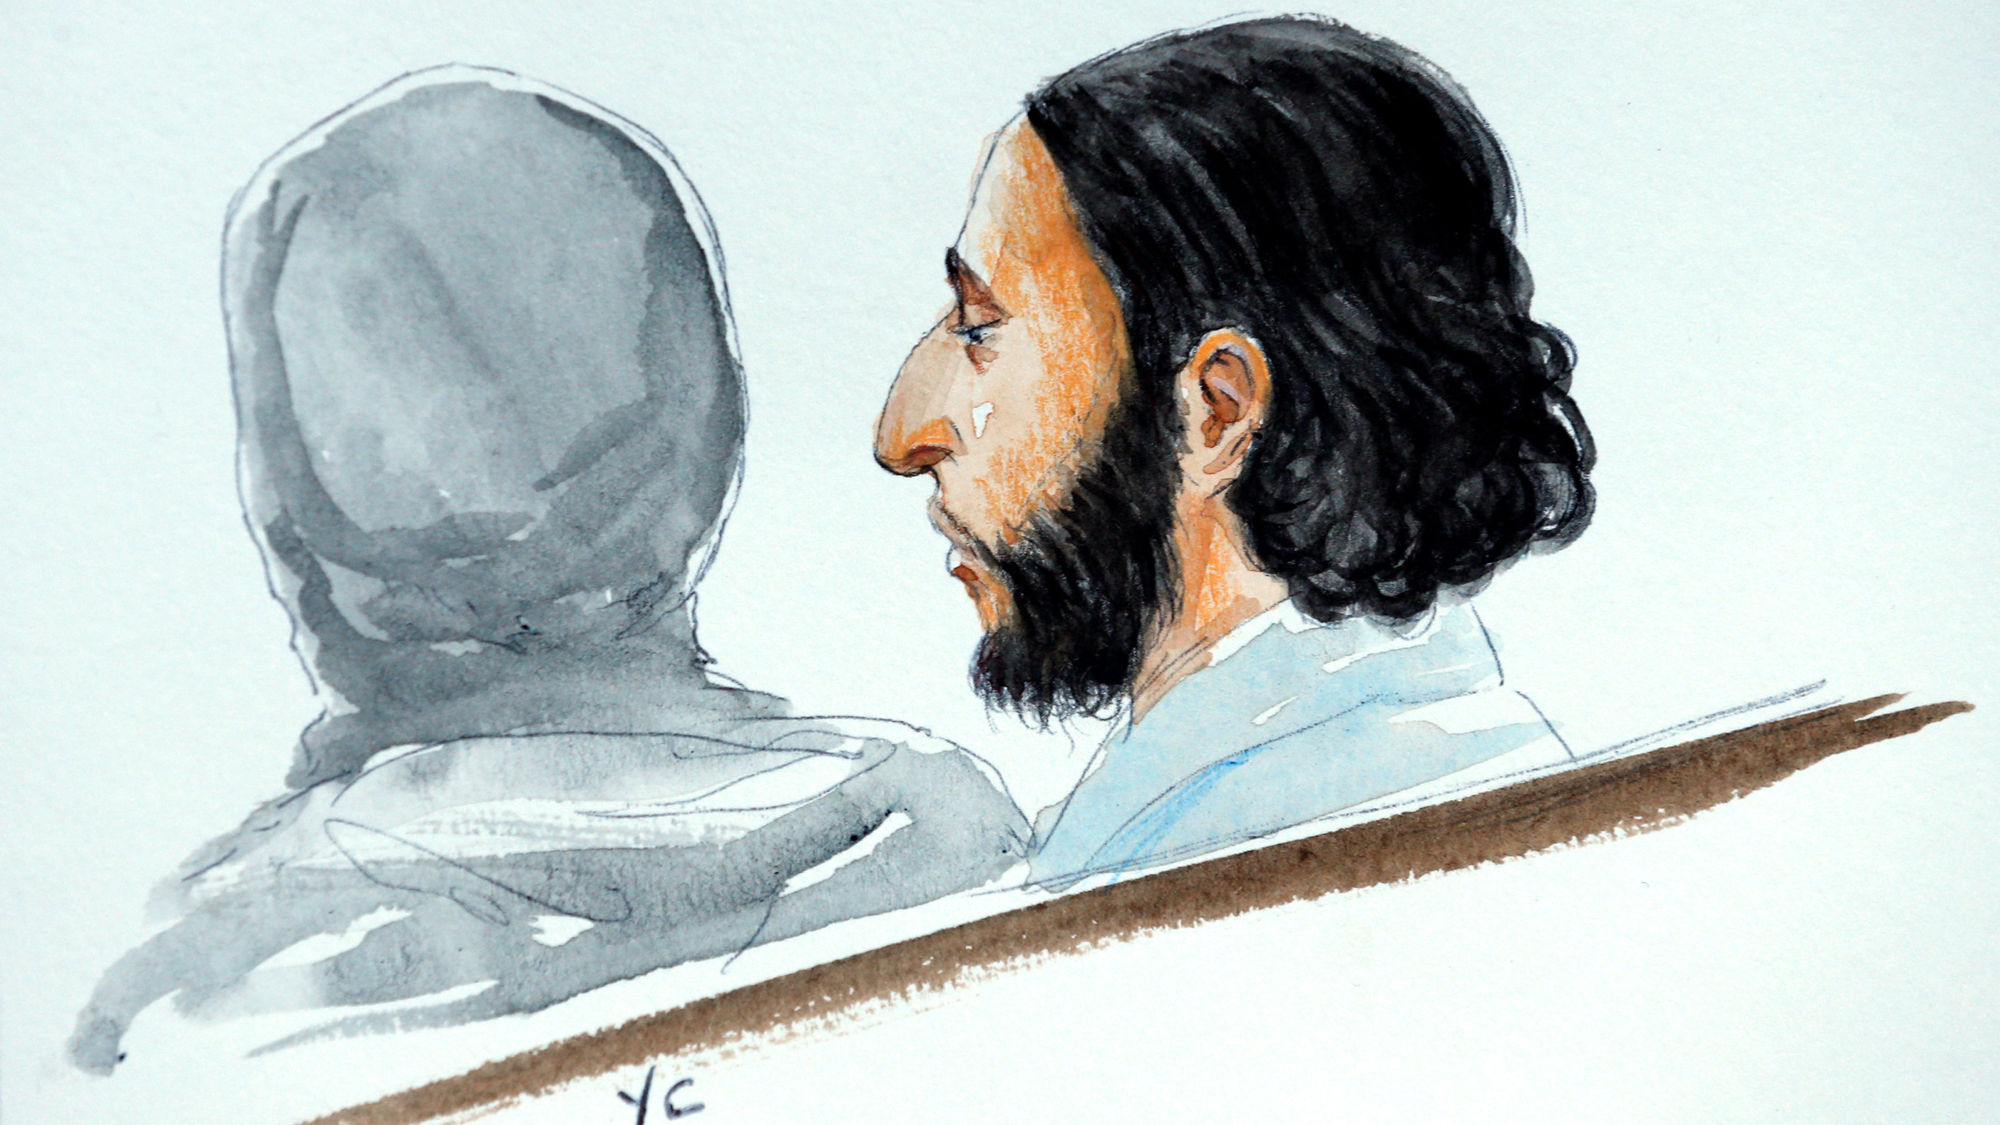 A court artist drawing shows Salah Abdeslam, one of the suspects in the 2015 ISIS attacks in Paris, in court during his trial in Brussels, Belgium.